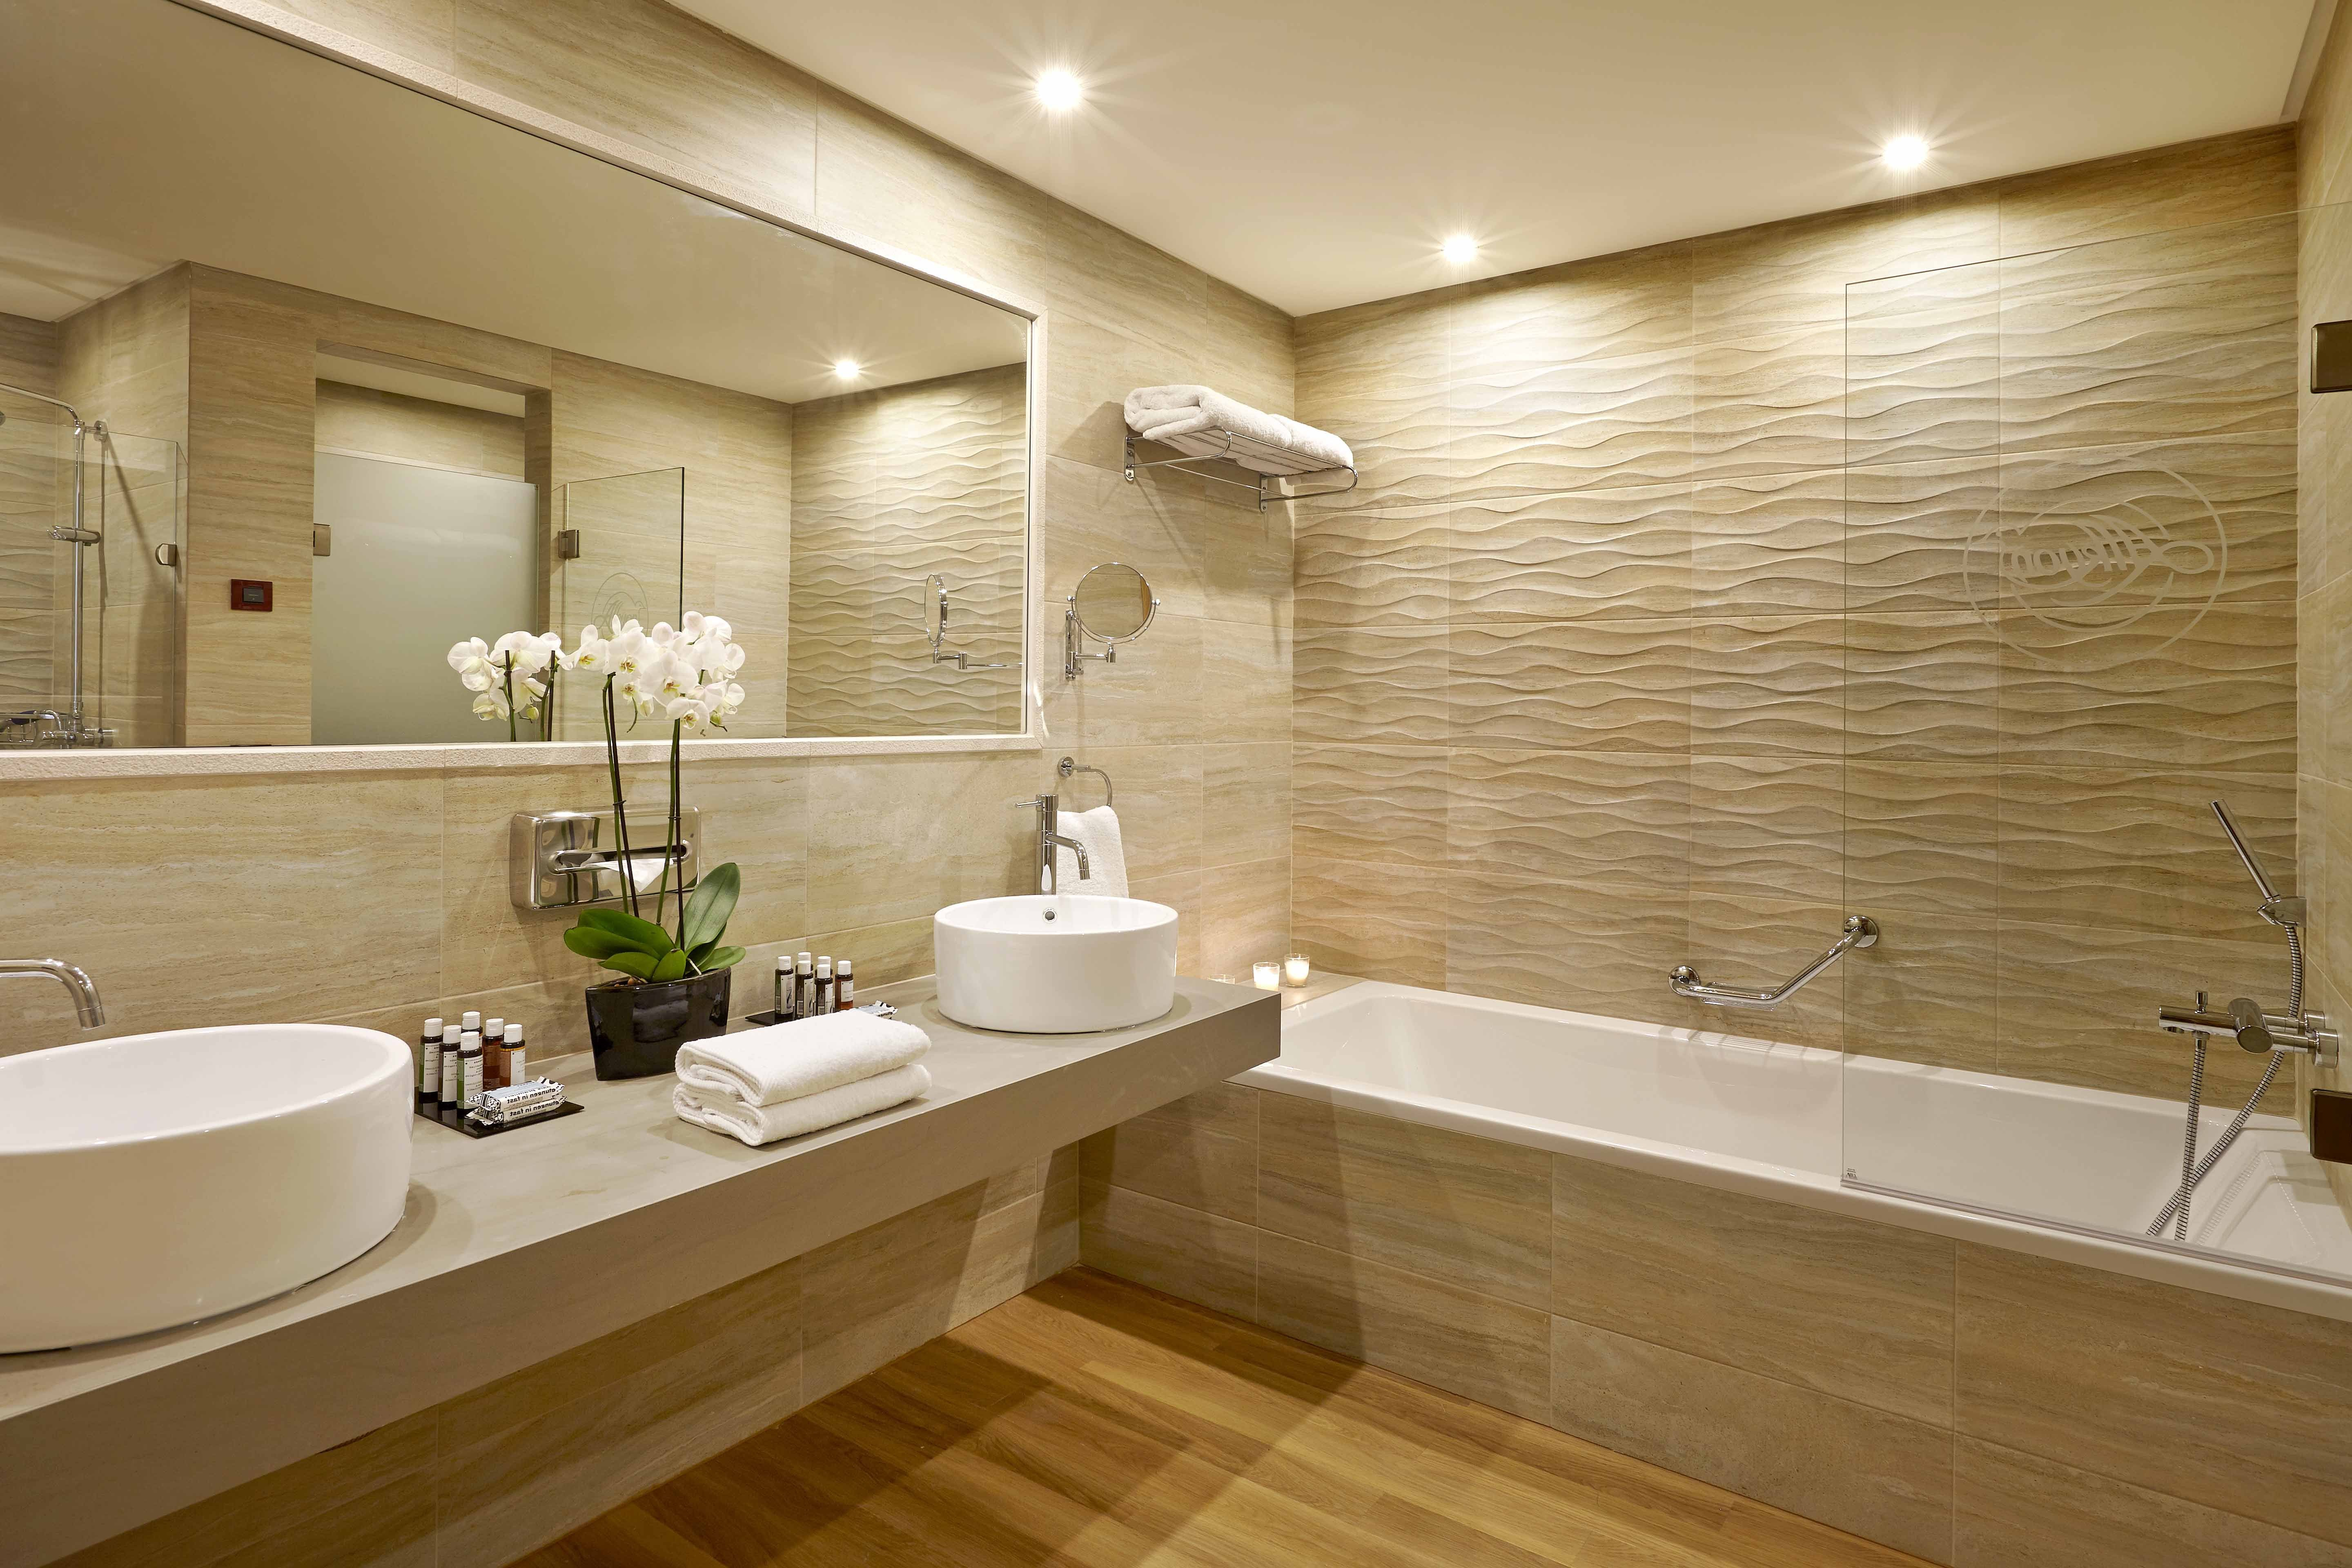 Bright_bathroom_091023_